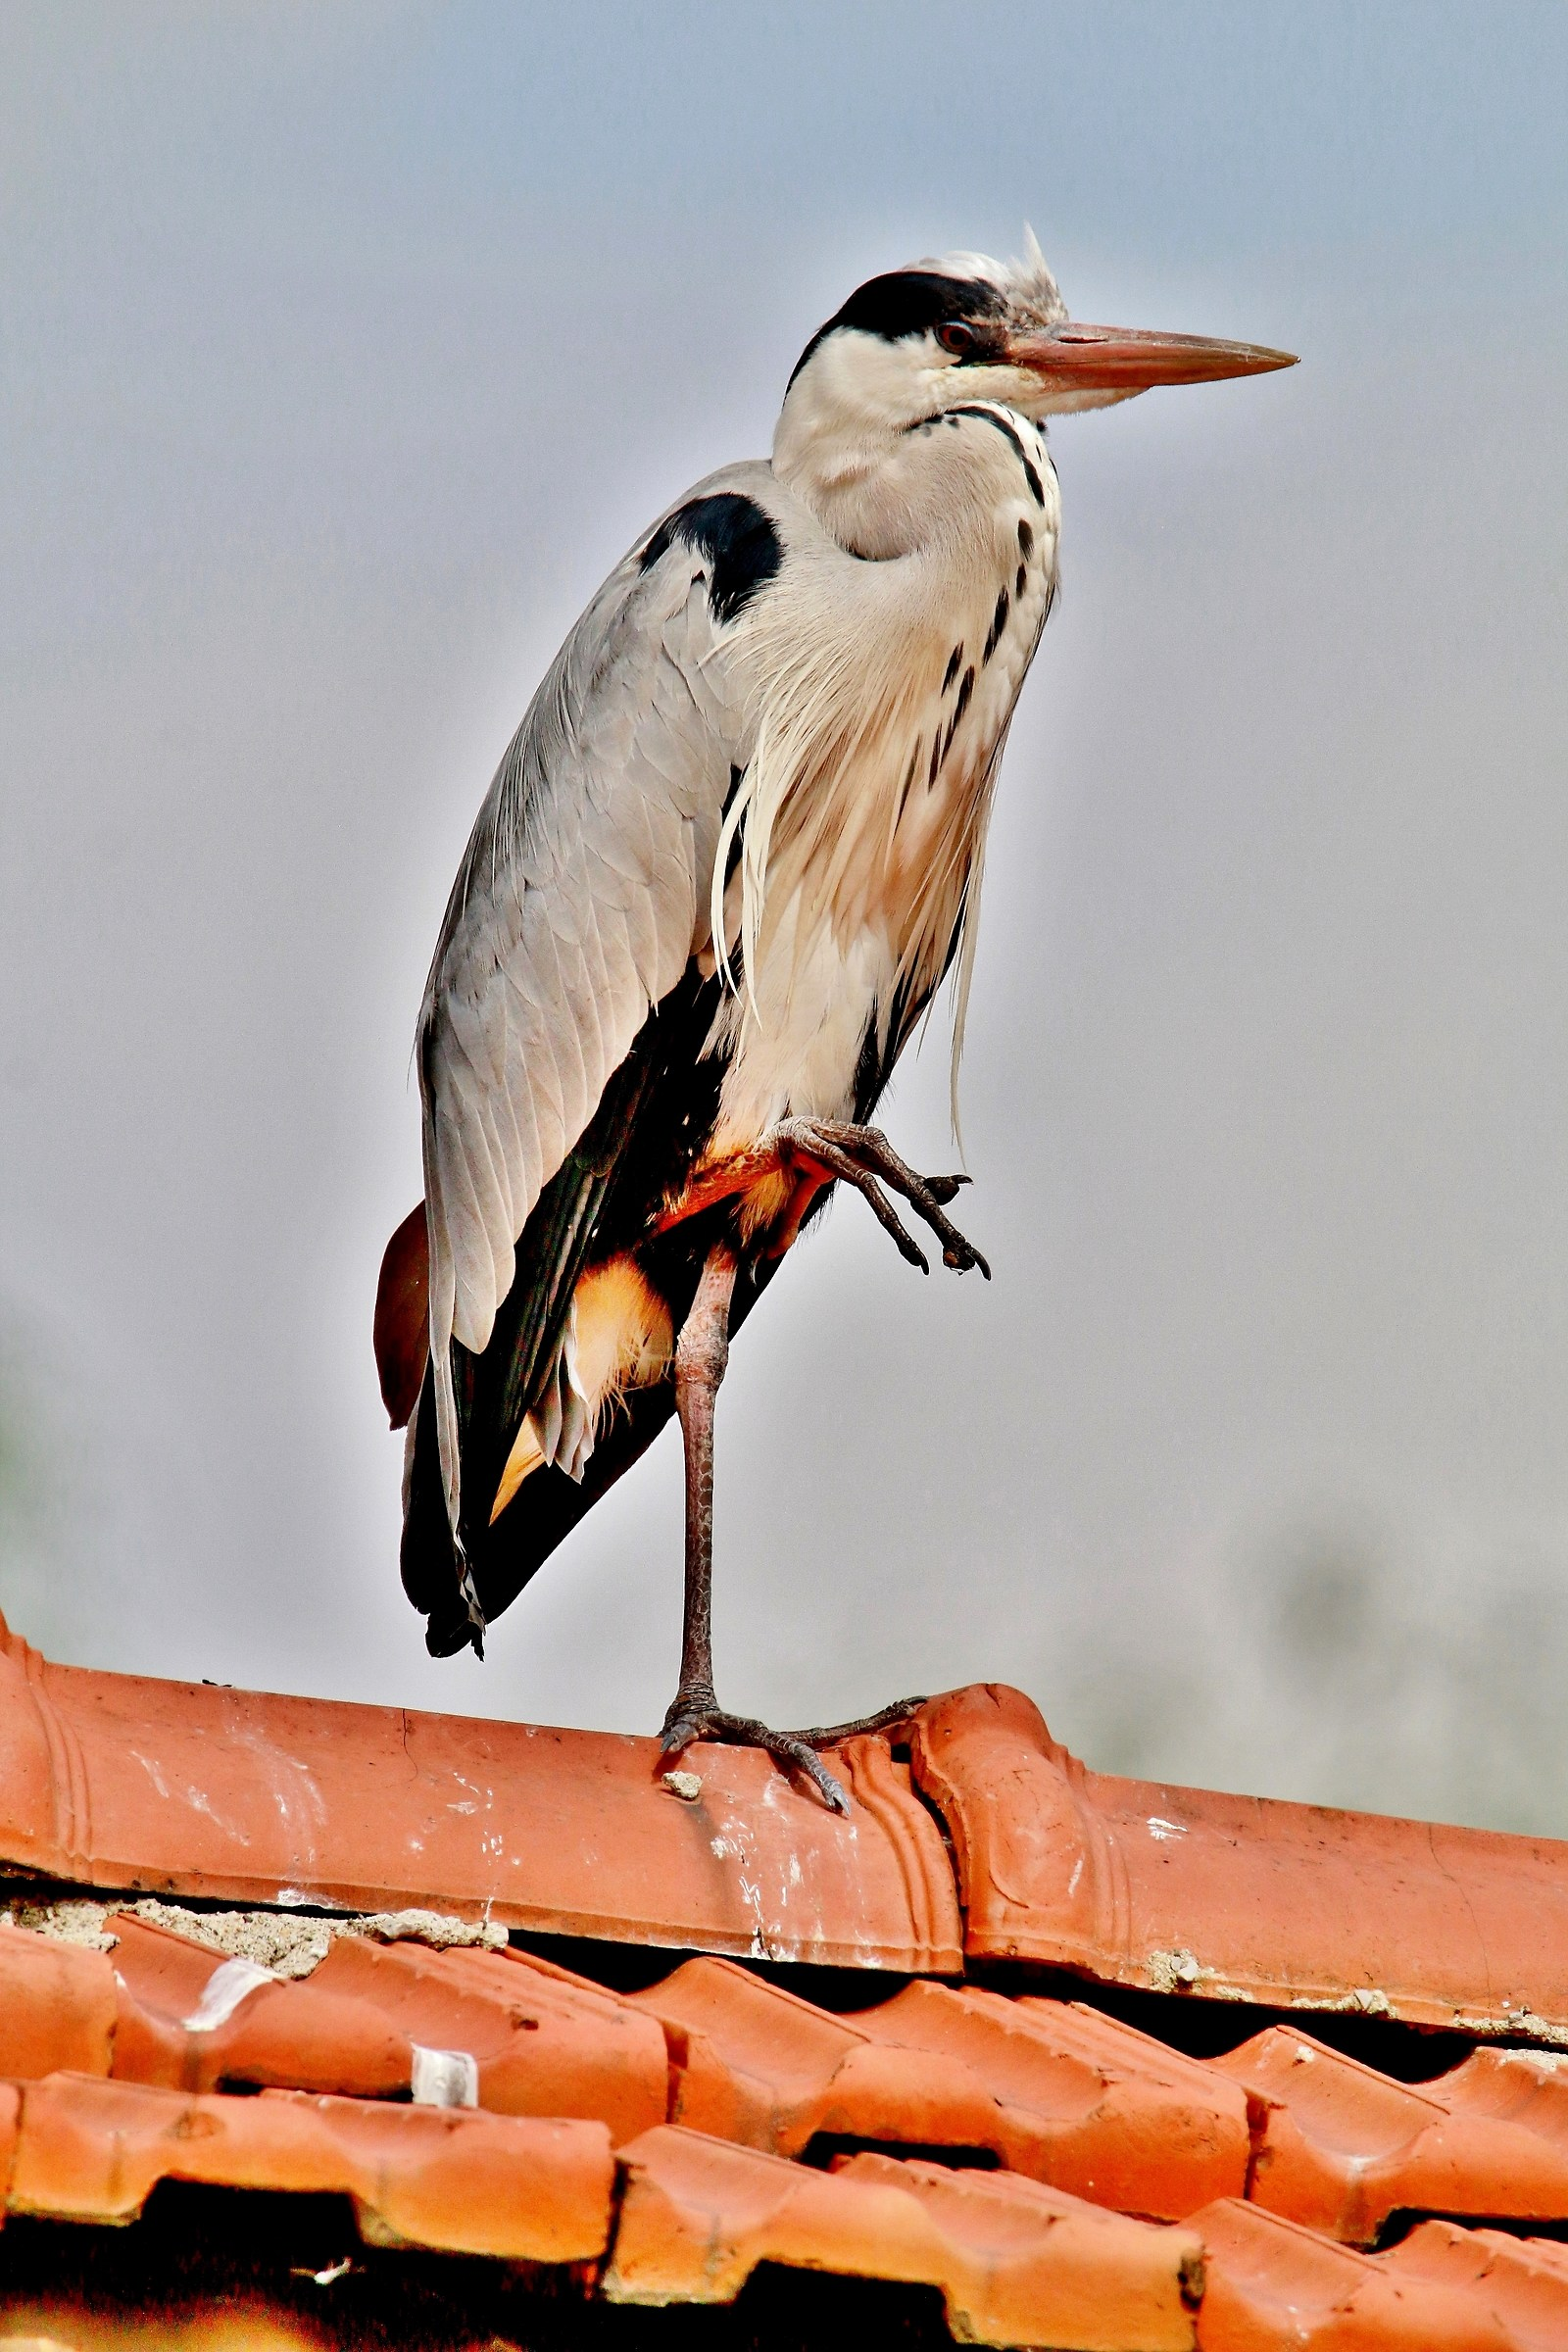 The Heron......... on the hot roof.......